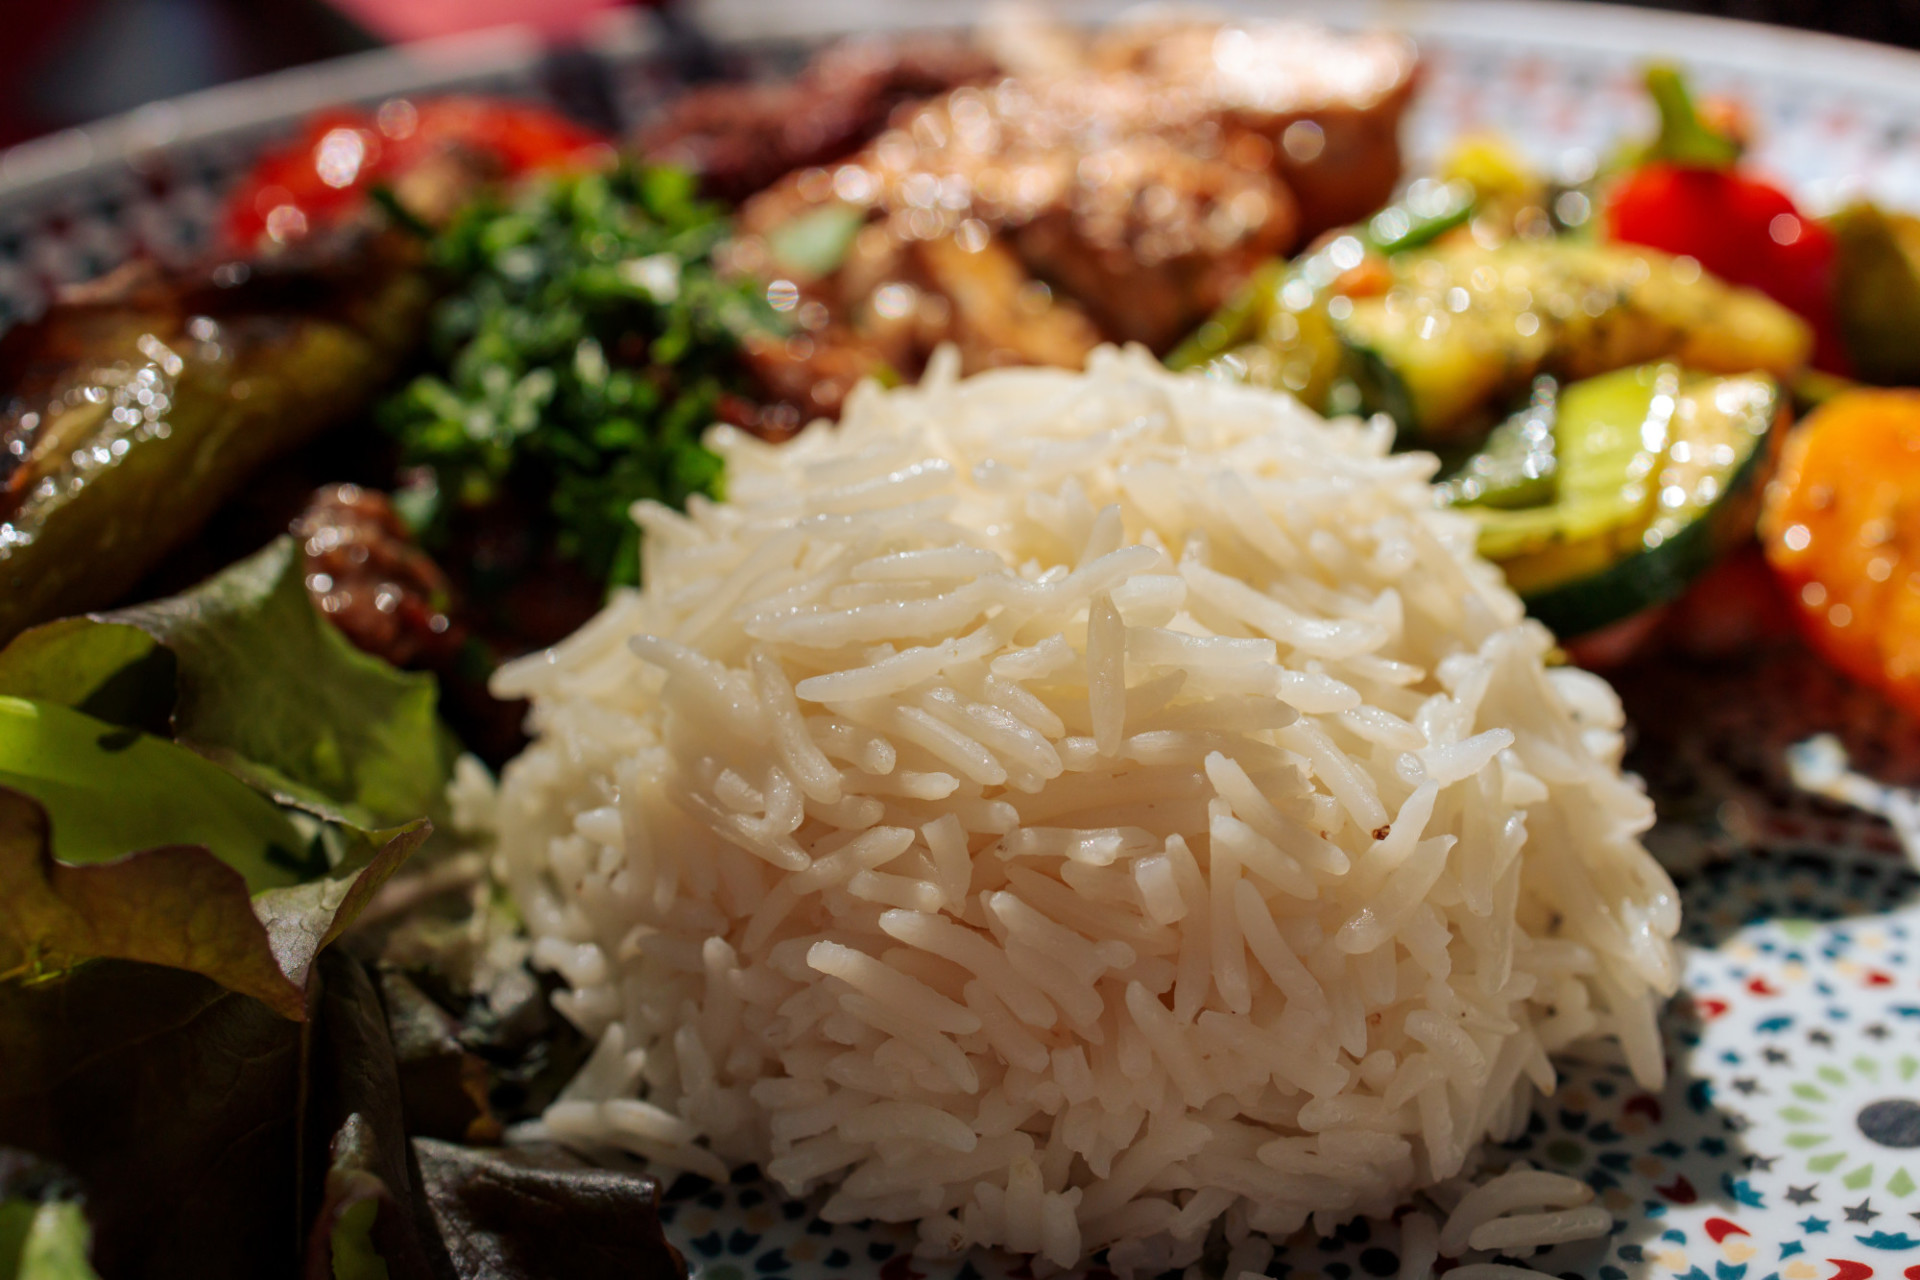 A portion of rice on a plate